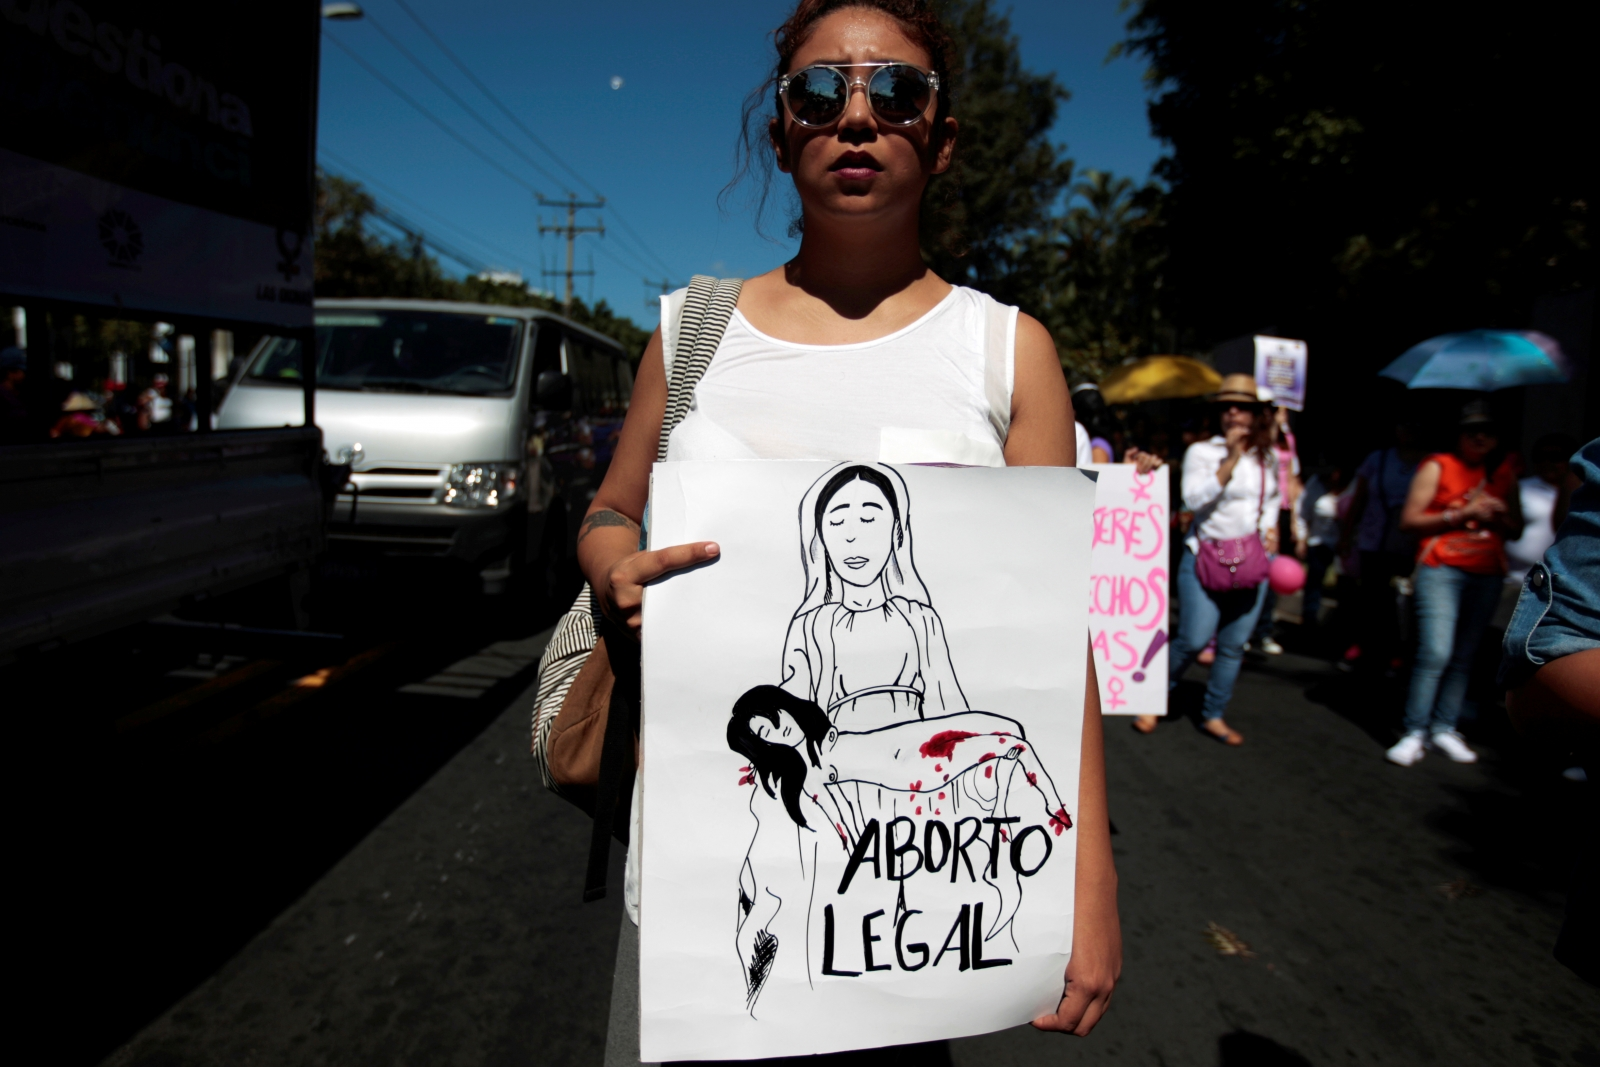 Teenager jailed in El Salvador after toilet stillbirth